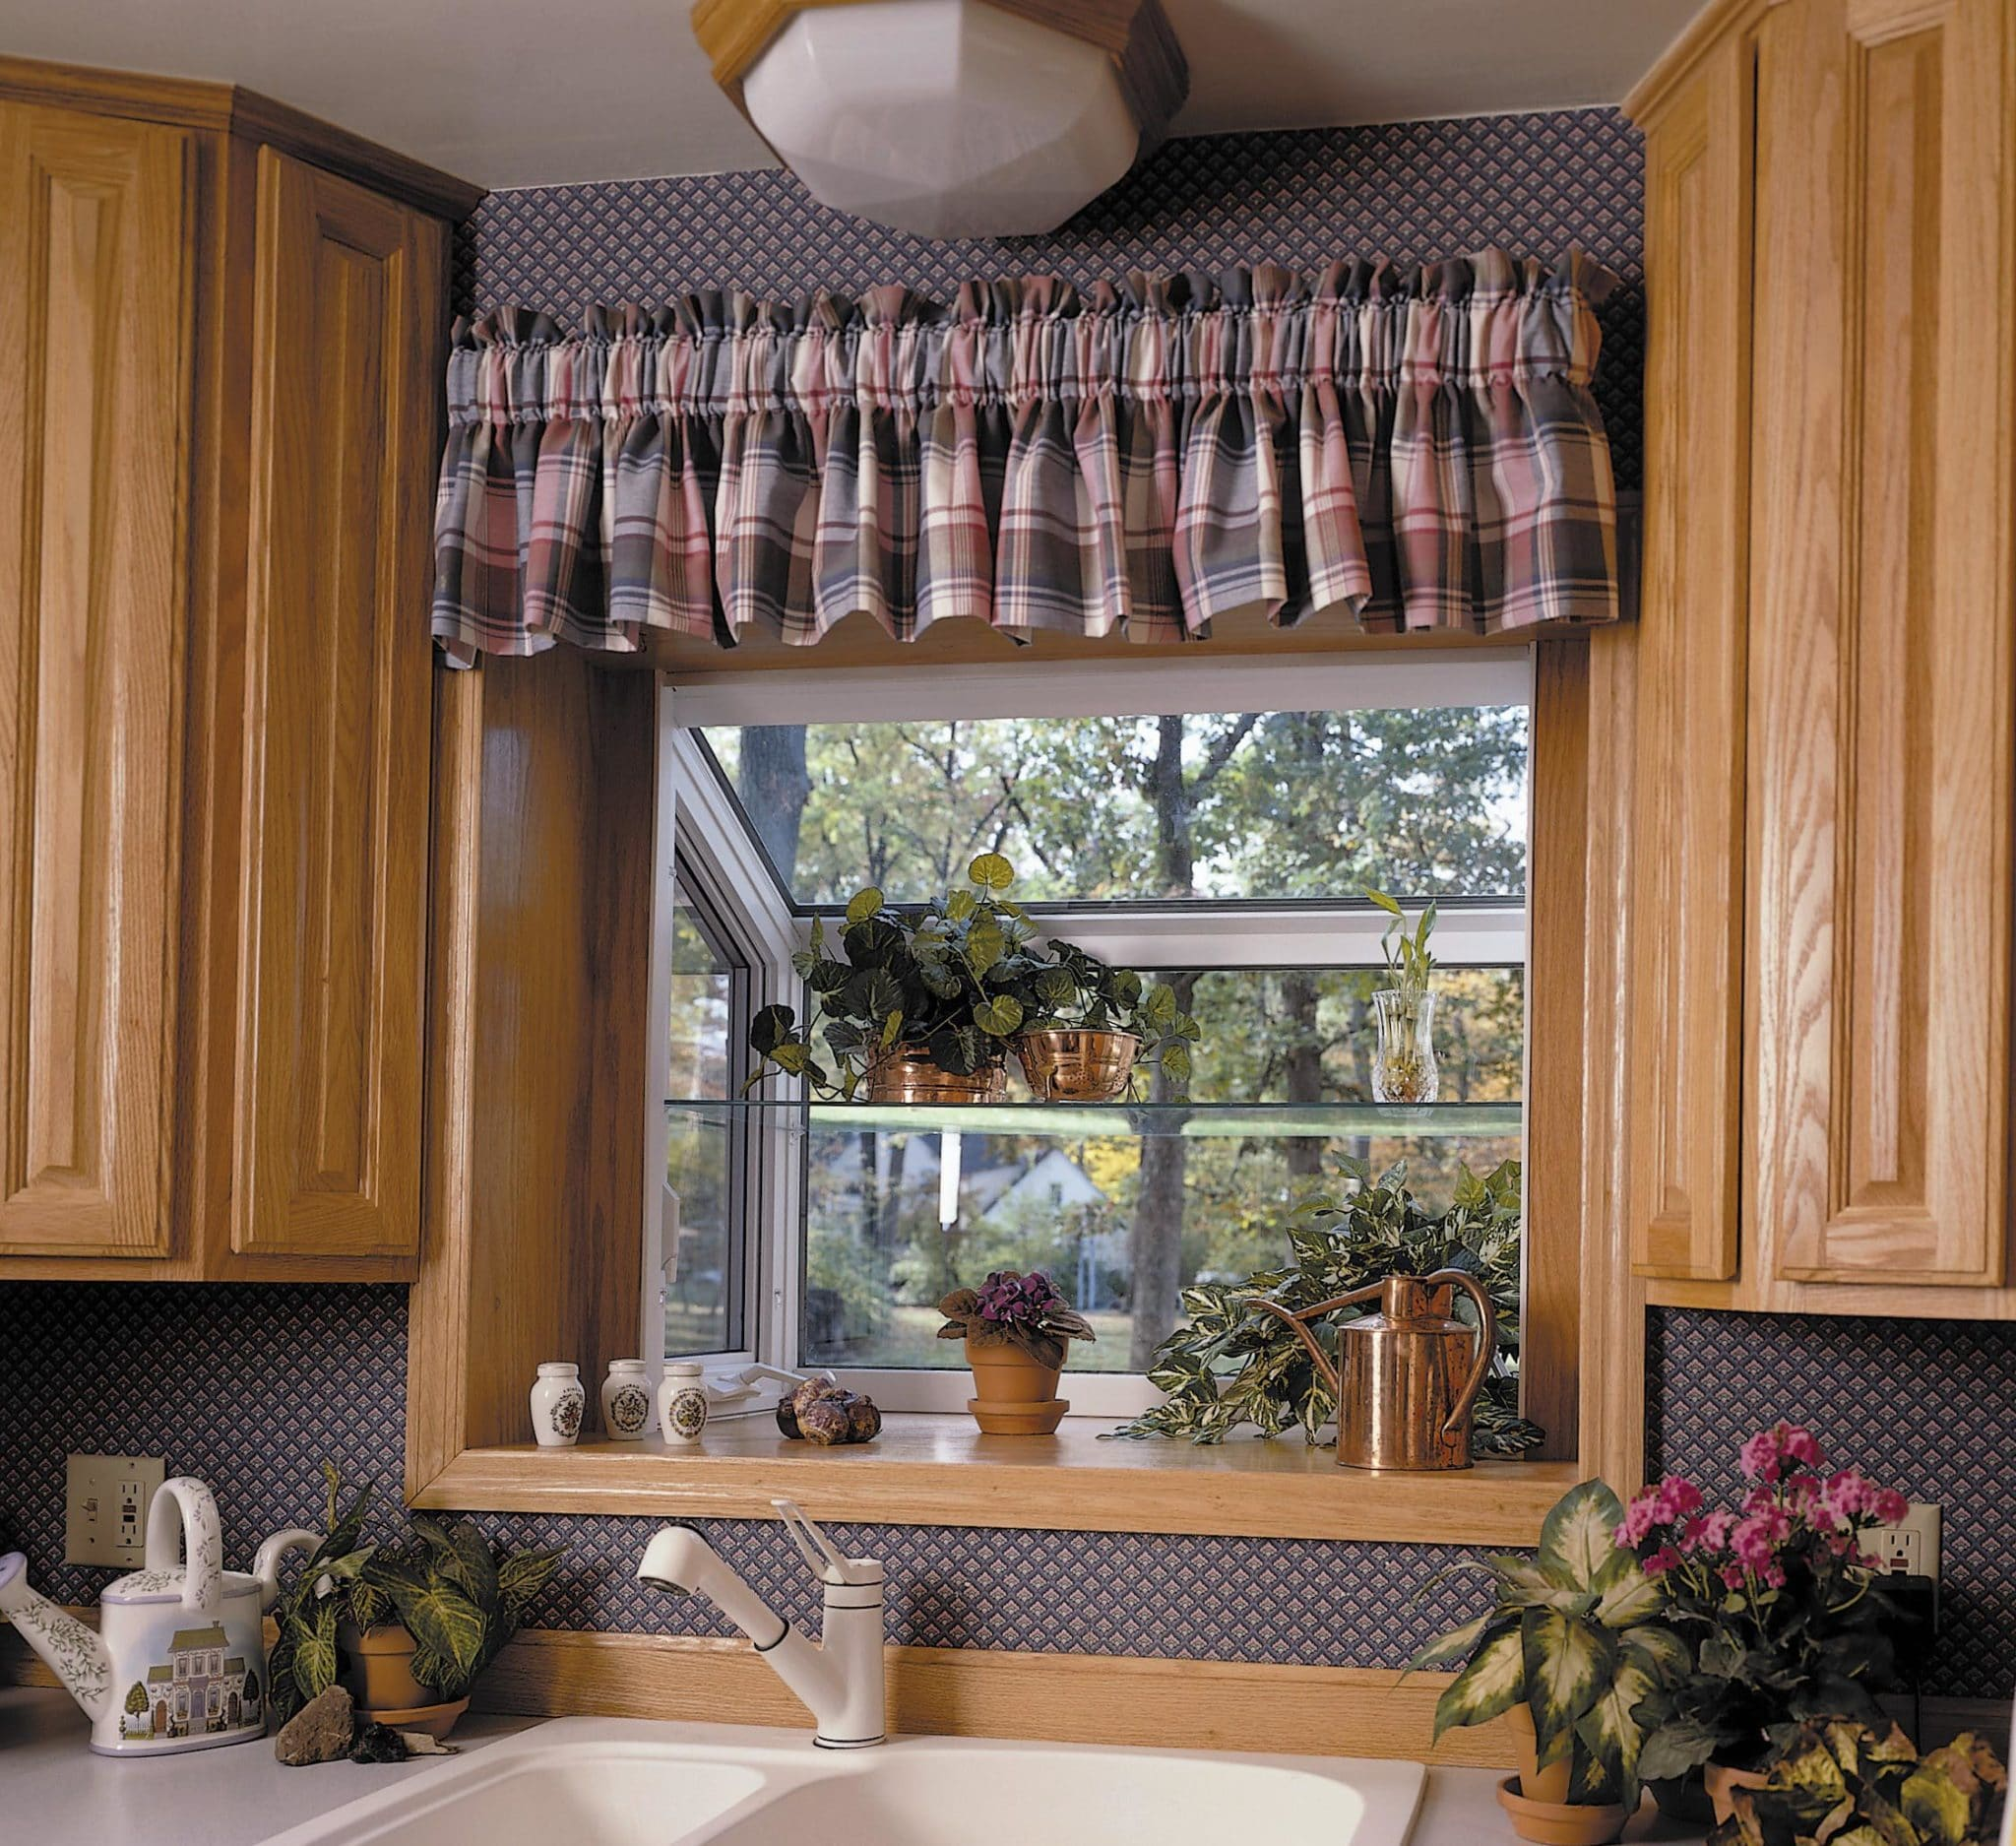 kitchen cleveland columbus greenhouse products ohio windows innovate garden window xl